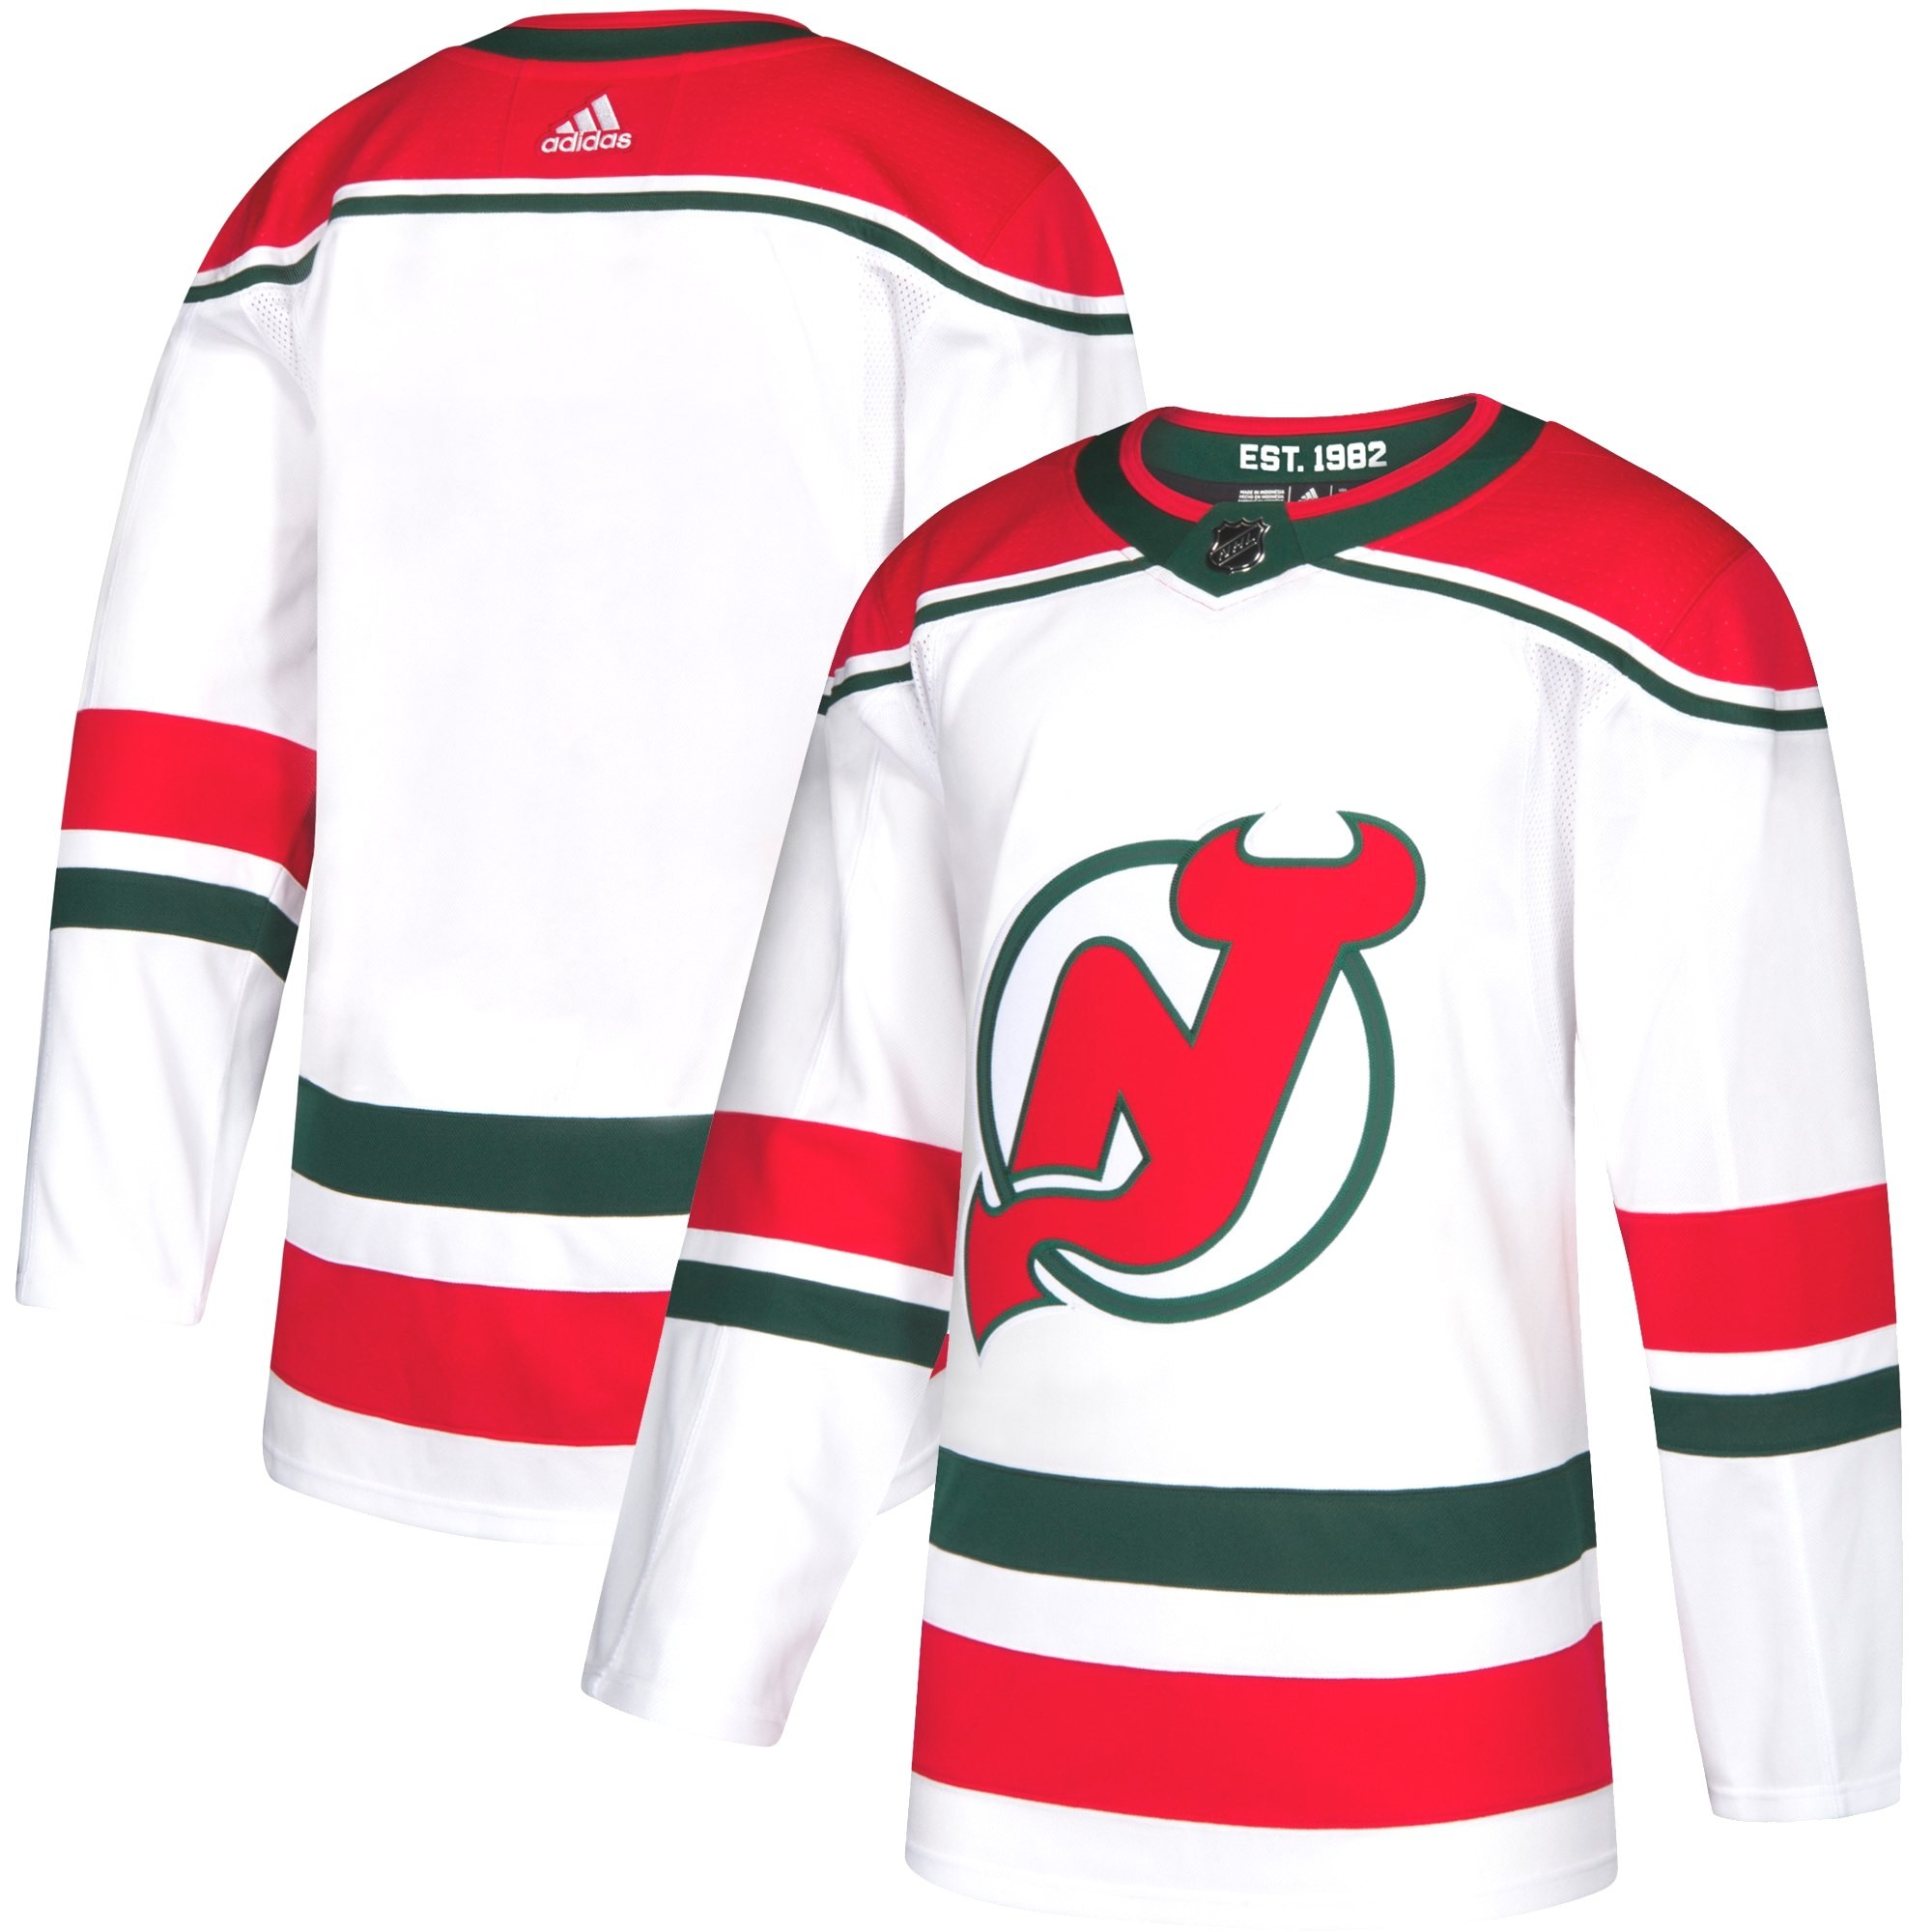 timeless design fee41 78cfa New Jersey Devils Adidas NHL Men's Climalite Authentic Alternate Hockey  Jersey